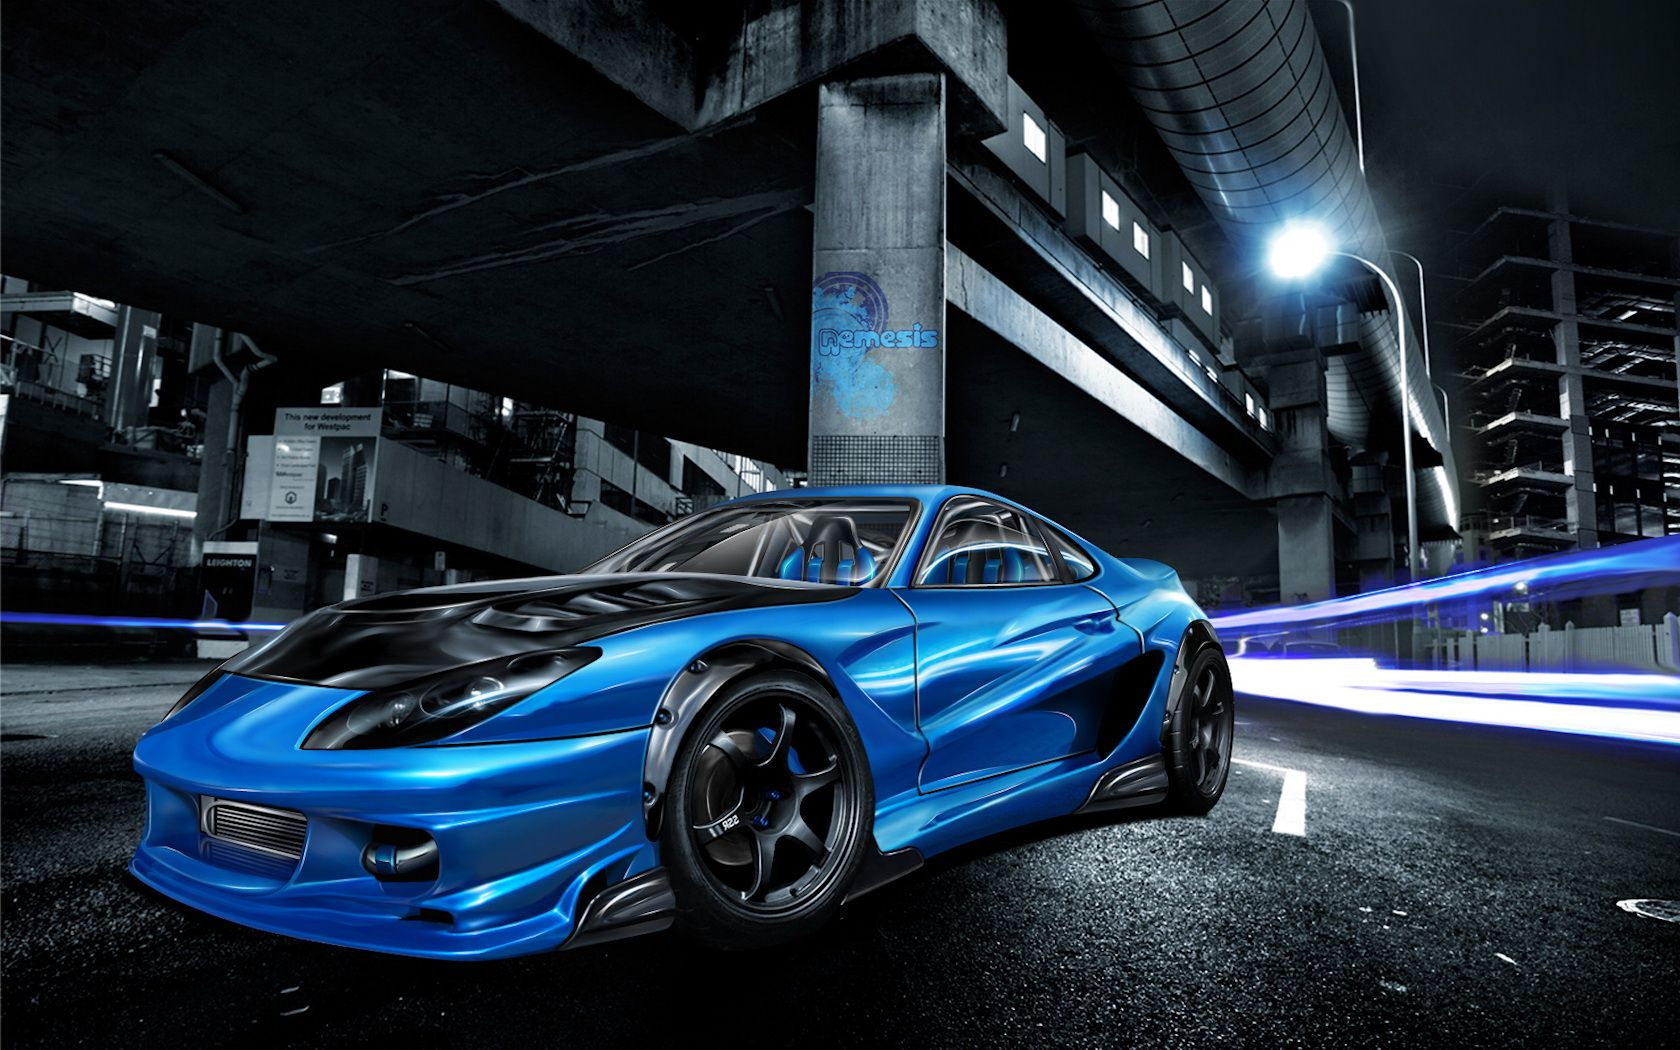 Wallpaper Street Race Car Wallpapers Hd Wallpapers 1680 X 1050 Px Best Racing Cars Blue Car Car Wallpapers